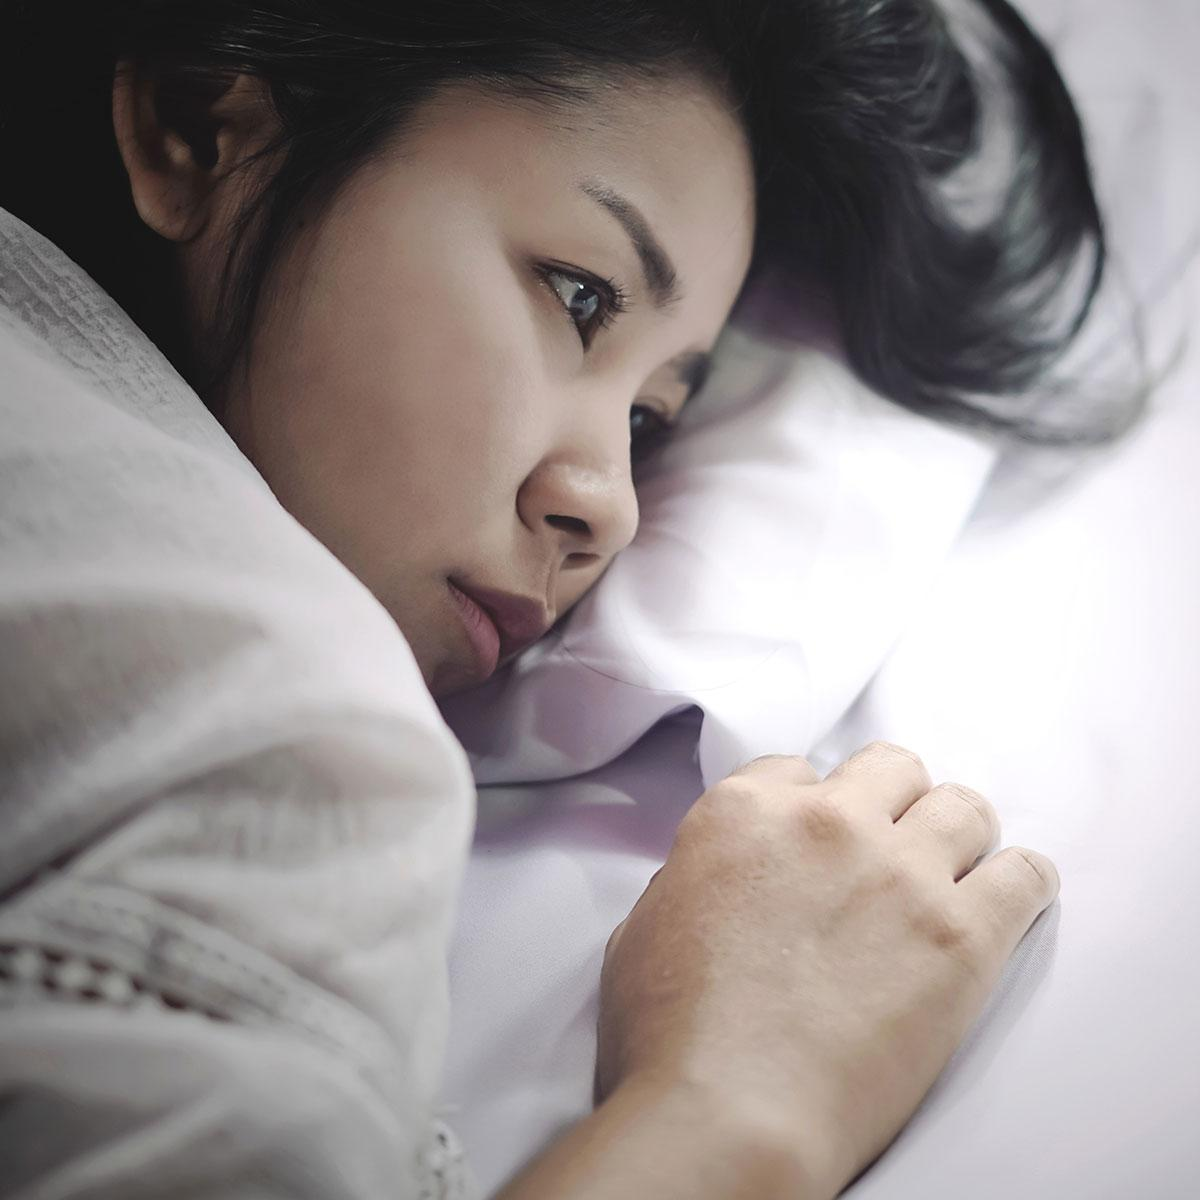 A person lying in bedDescription automatically generated with low confidence